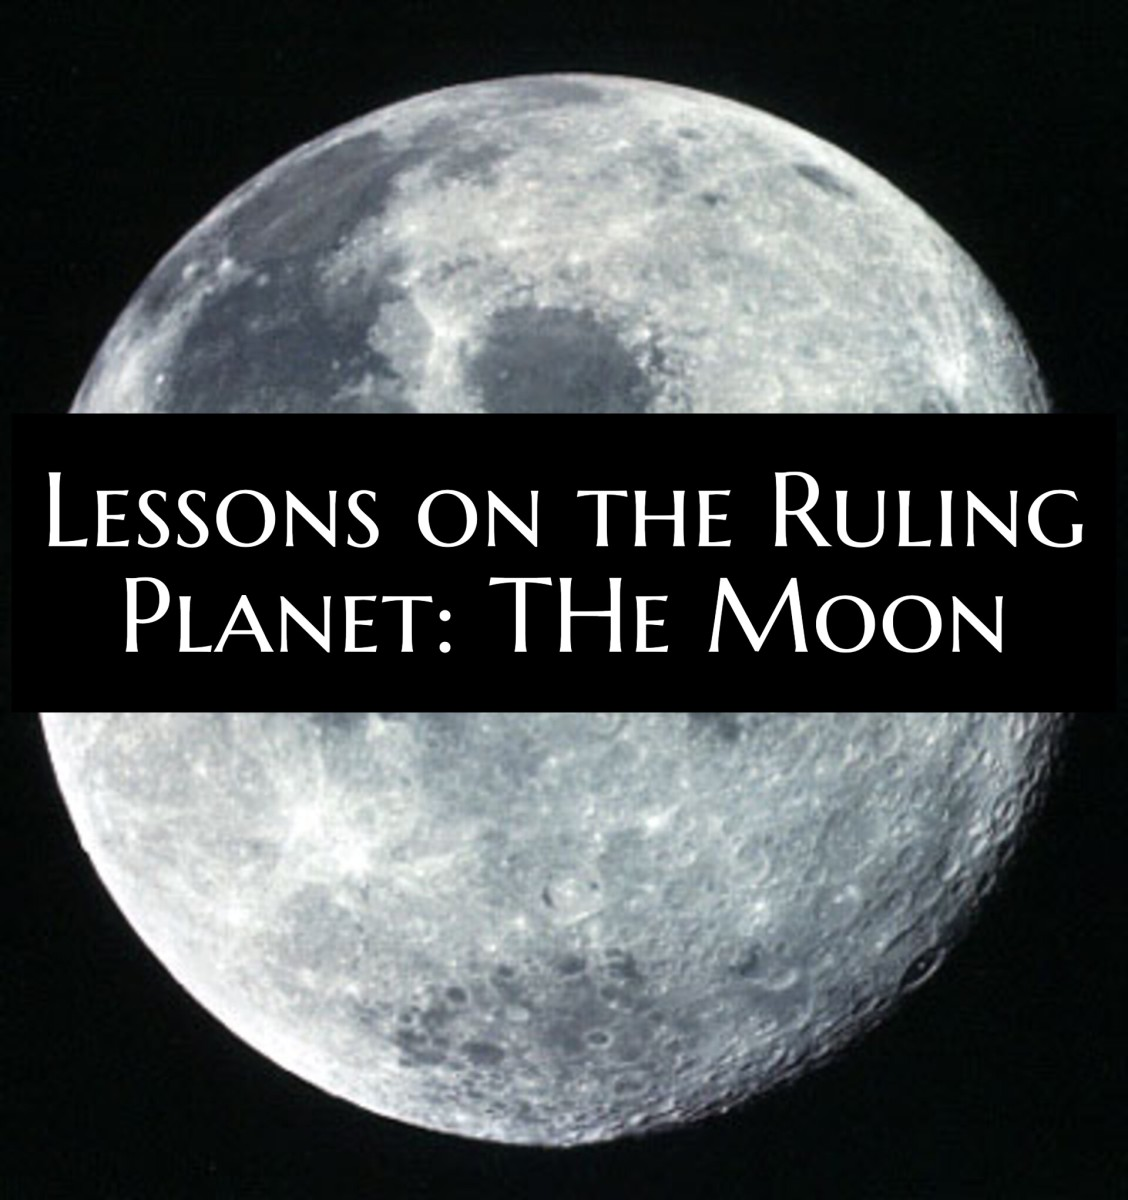 Everything You Need to Know about the Ruling Planet the Moon